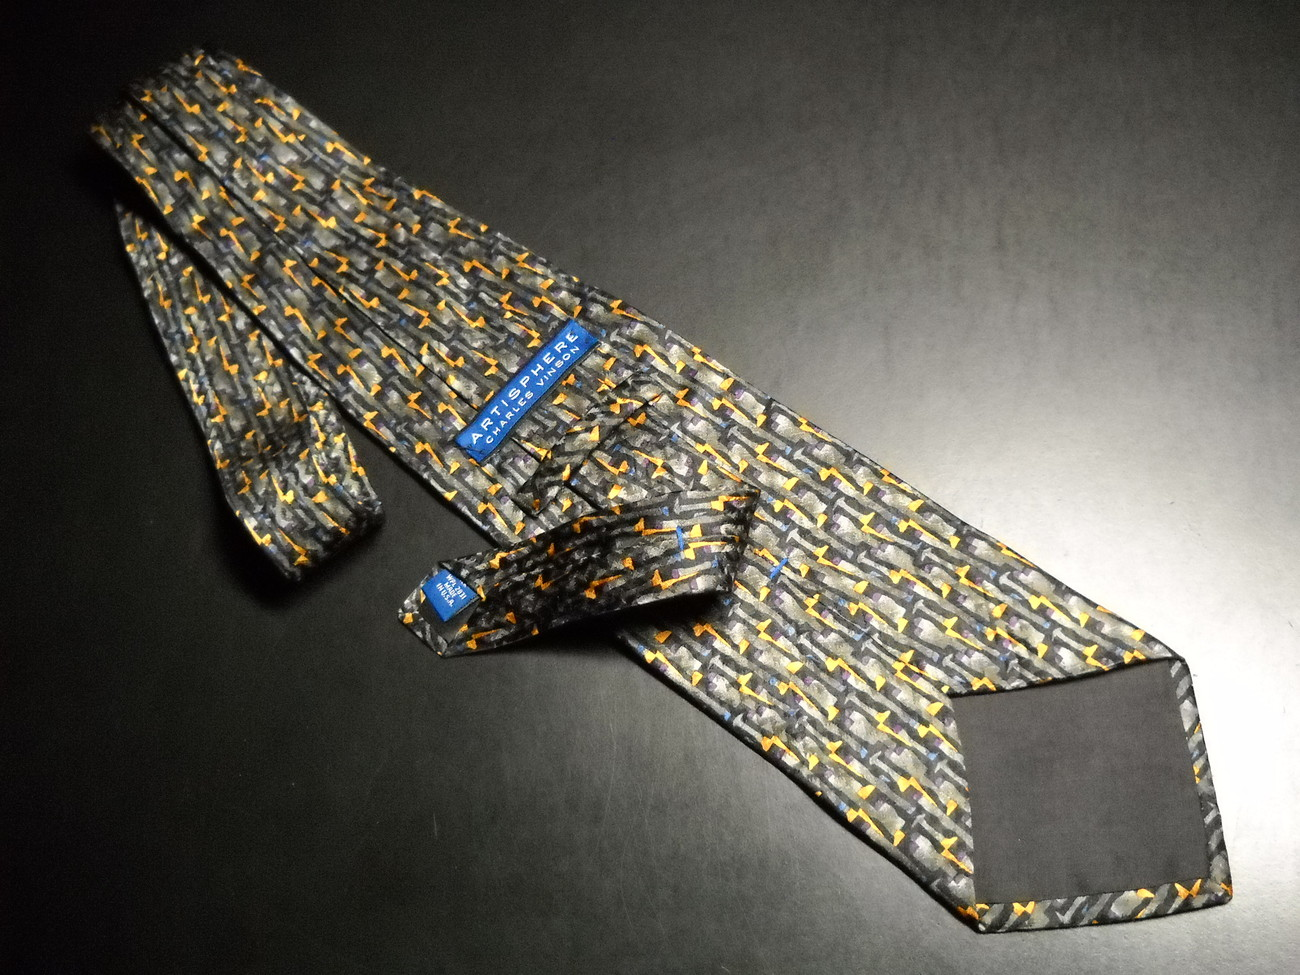 Charles Vinson Artisphere Neck Tie Greys Golds Blues Purples Imported Silk